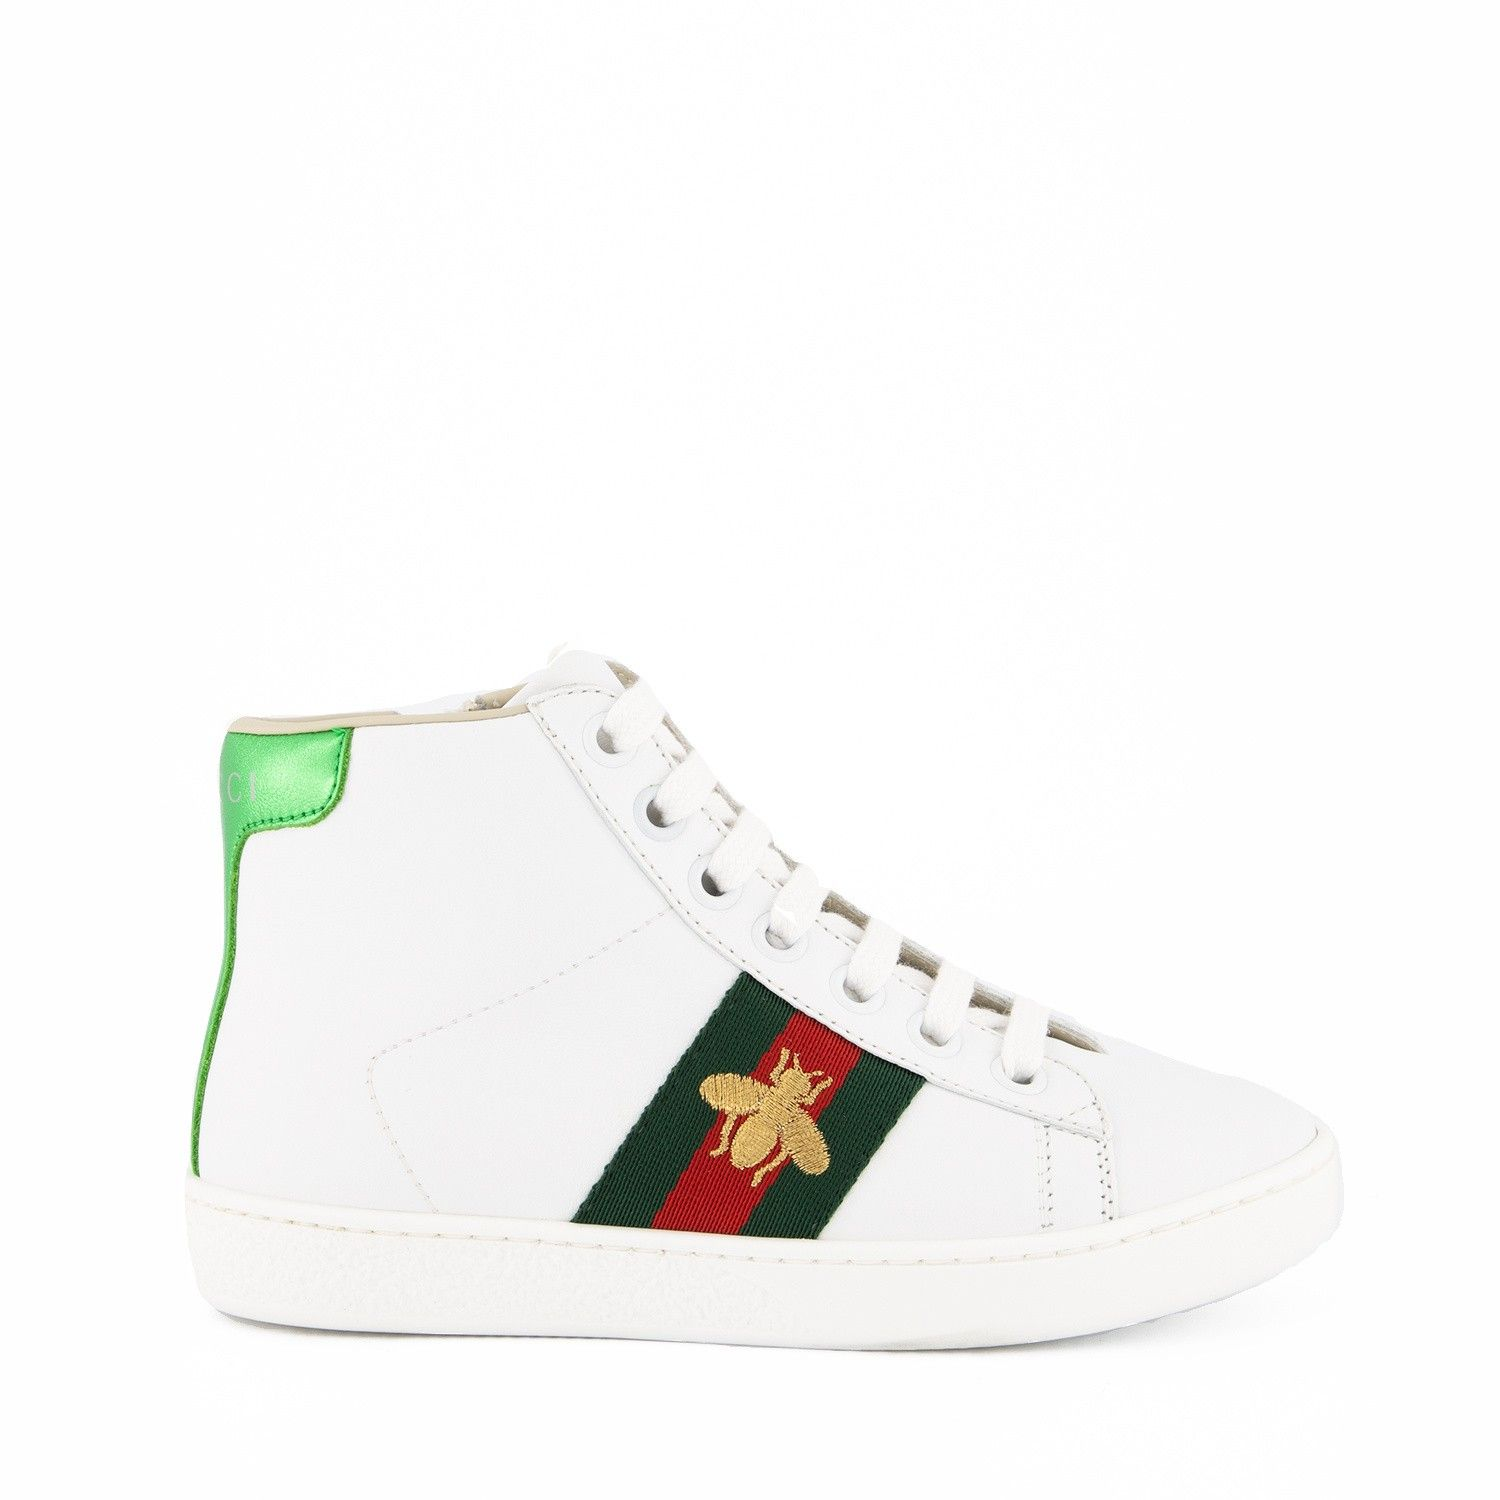 Picture of Gucci 526167 kids sneakers white